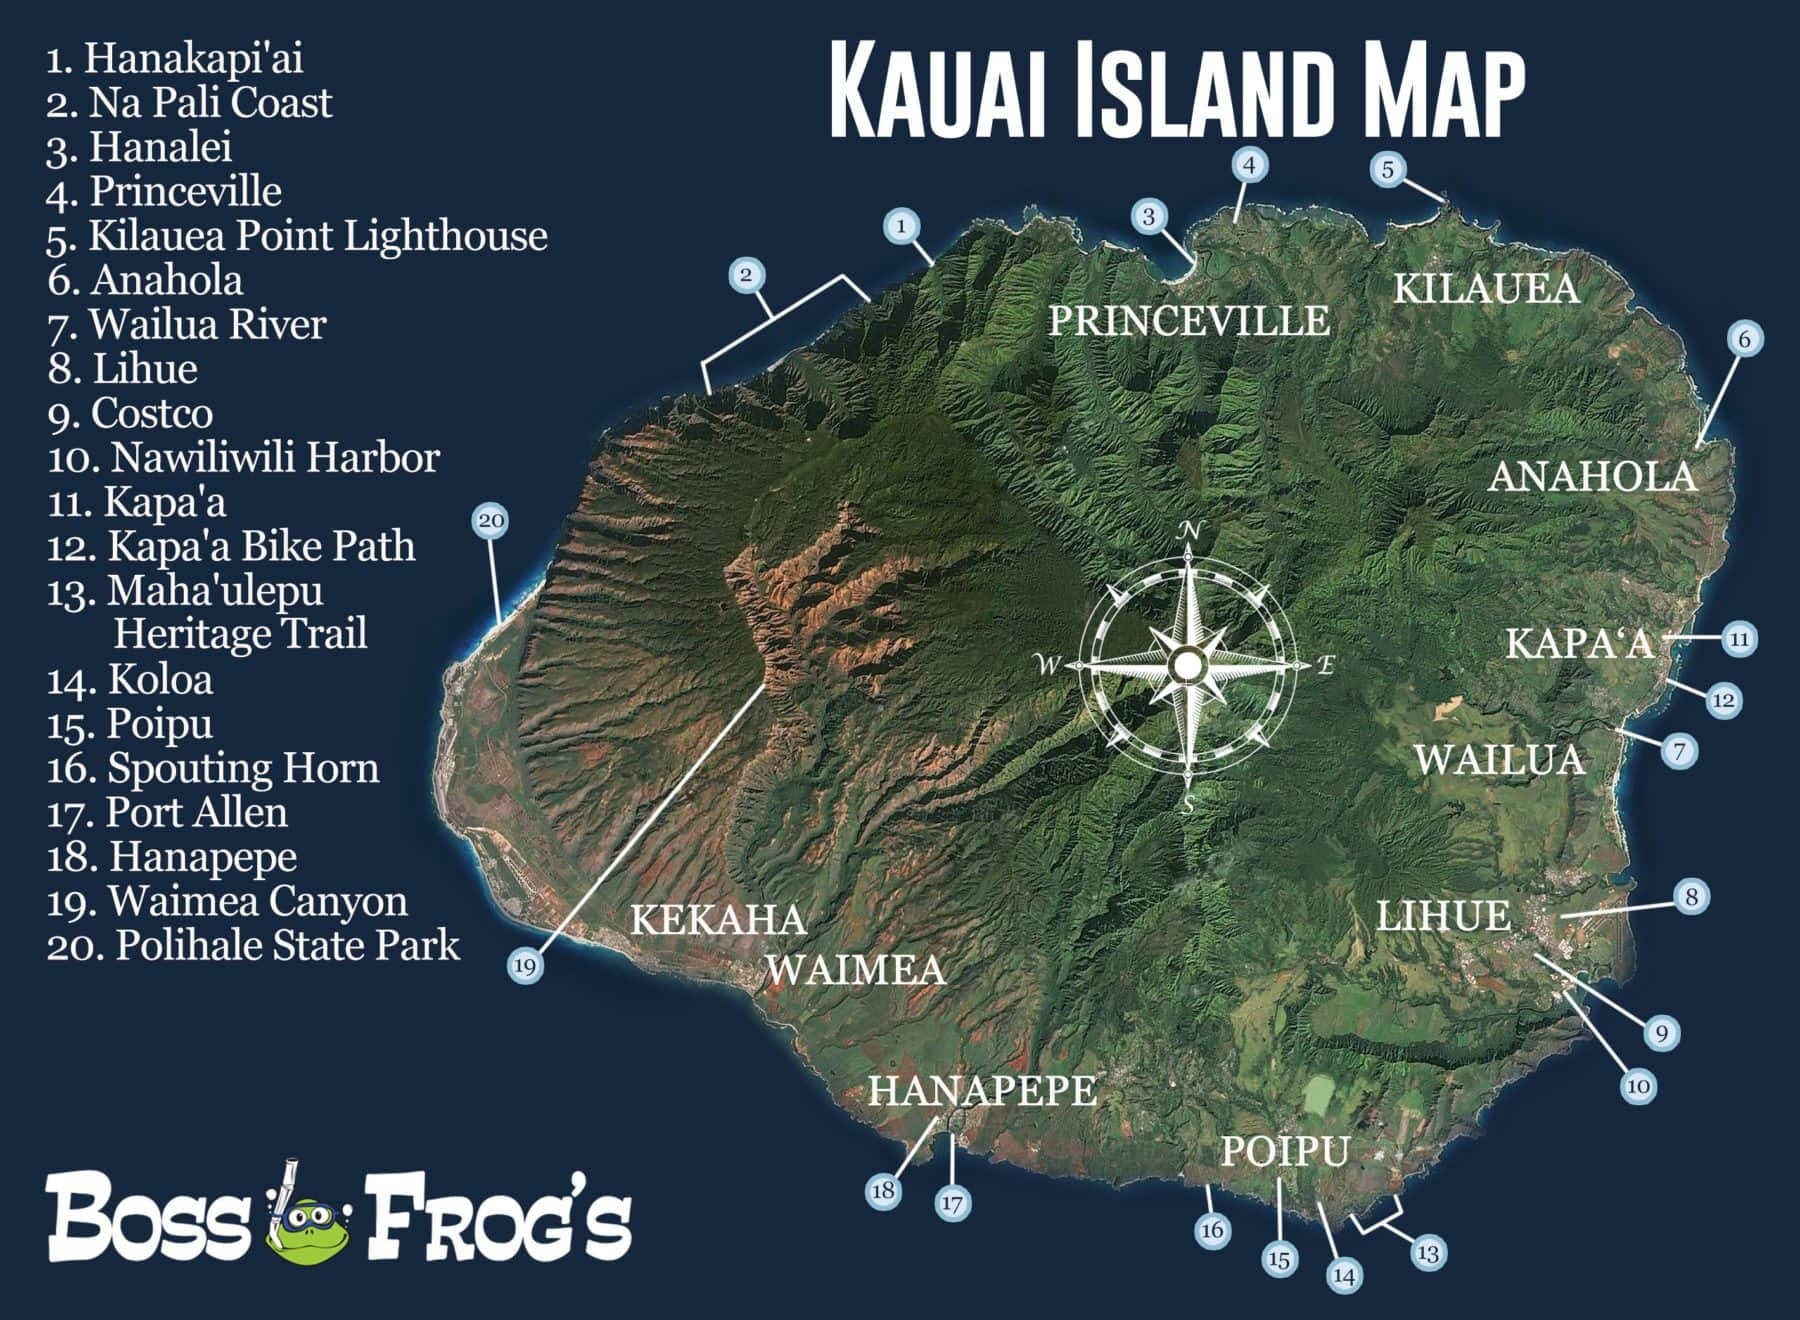 helicopter tour napali coast with Island Map on Island Map as well How To See The Napali Coast additionally Kauai By Air   adult 2818  29 moreover Kauai Hawaiis Island Of Discovery further Sanuk Sandle Brown Hawaiian Islands.